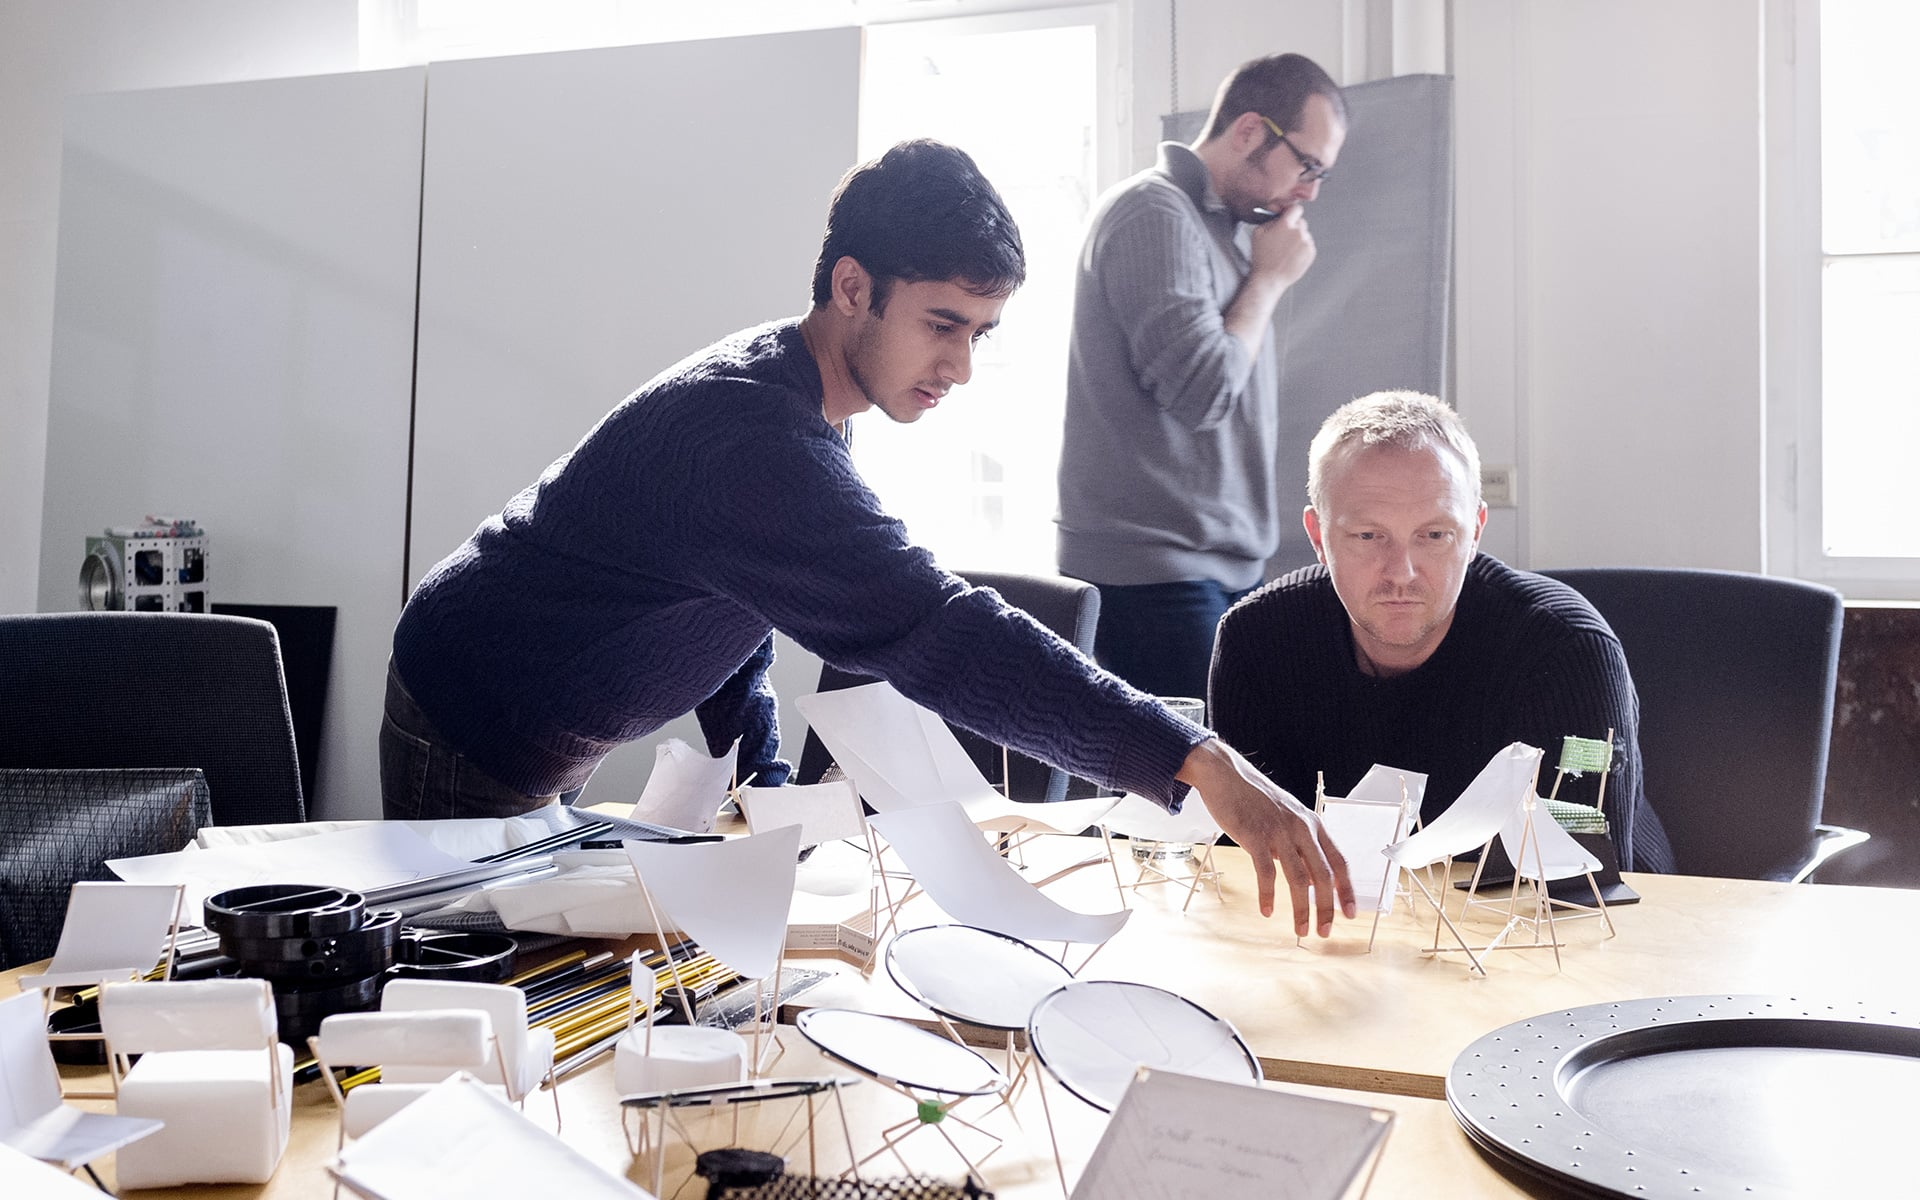 ITO Design colleagues arrange several small models of a chair design